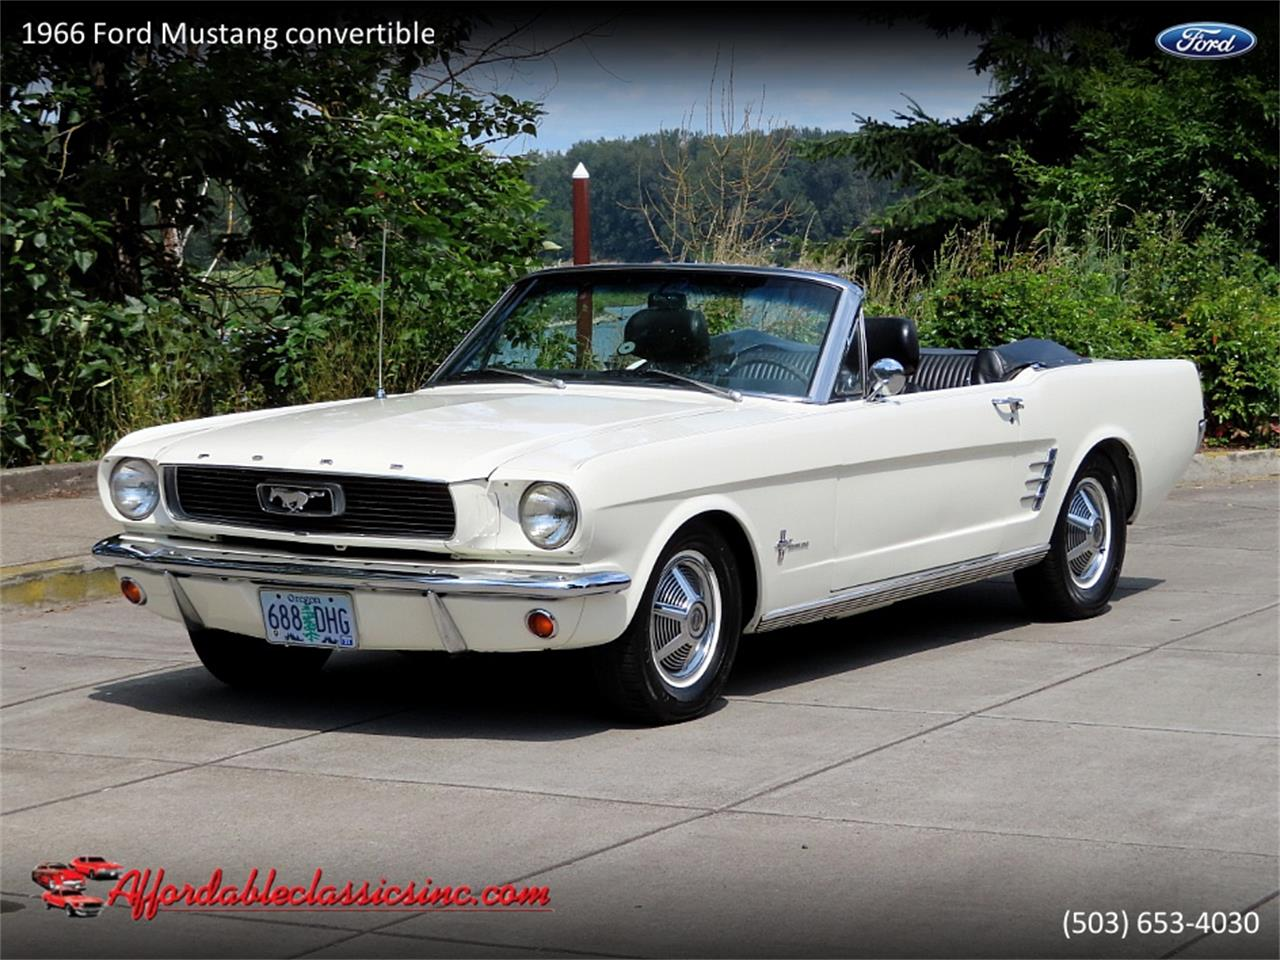 Ford Mustang Pony pack v8 289 1966 prix tout compris 1966